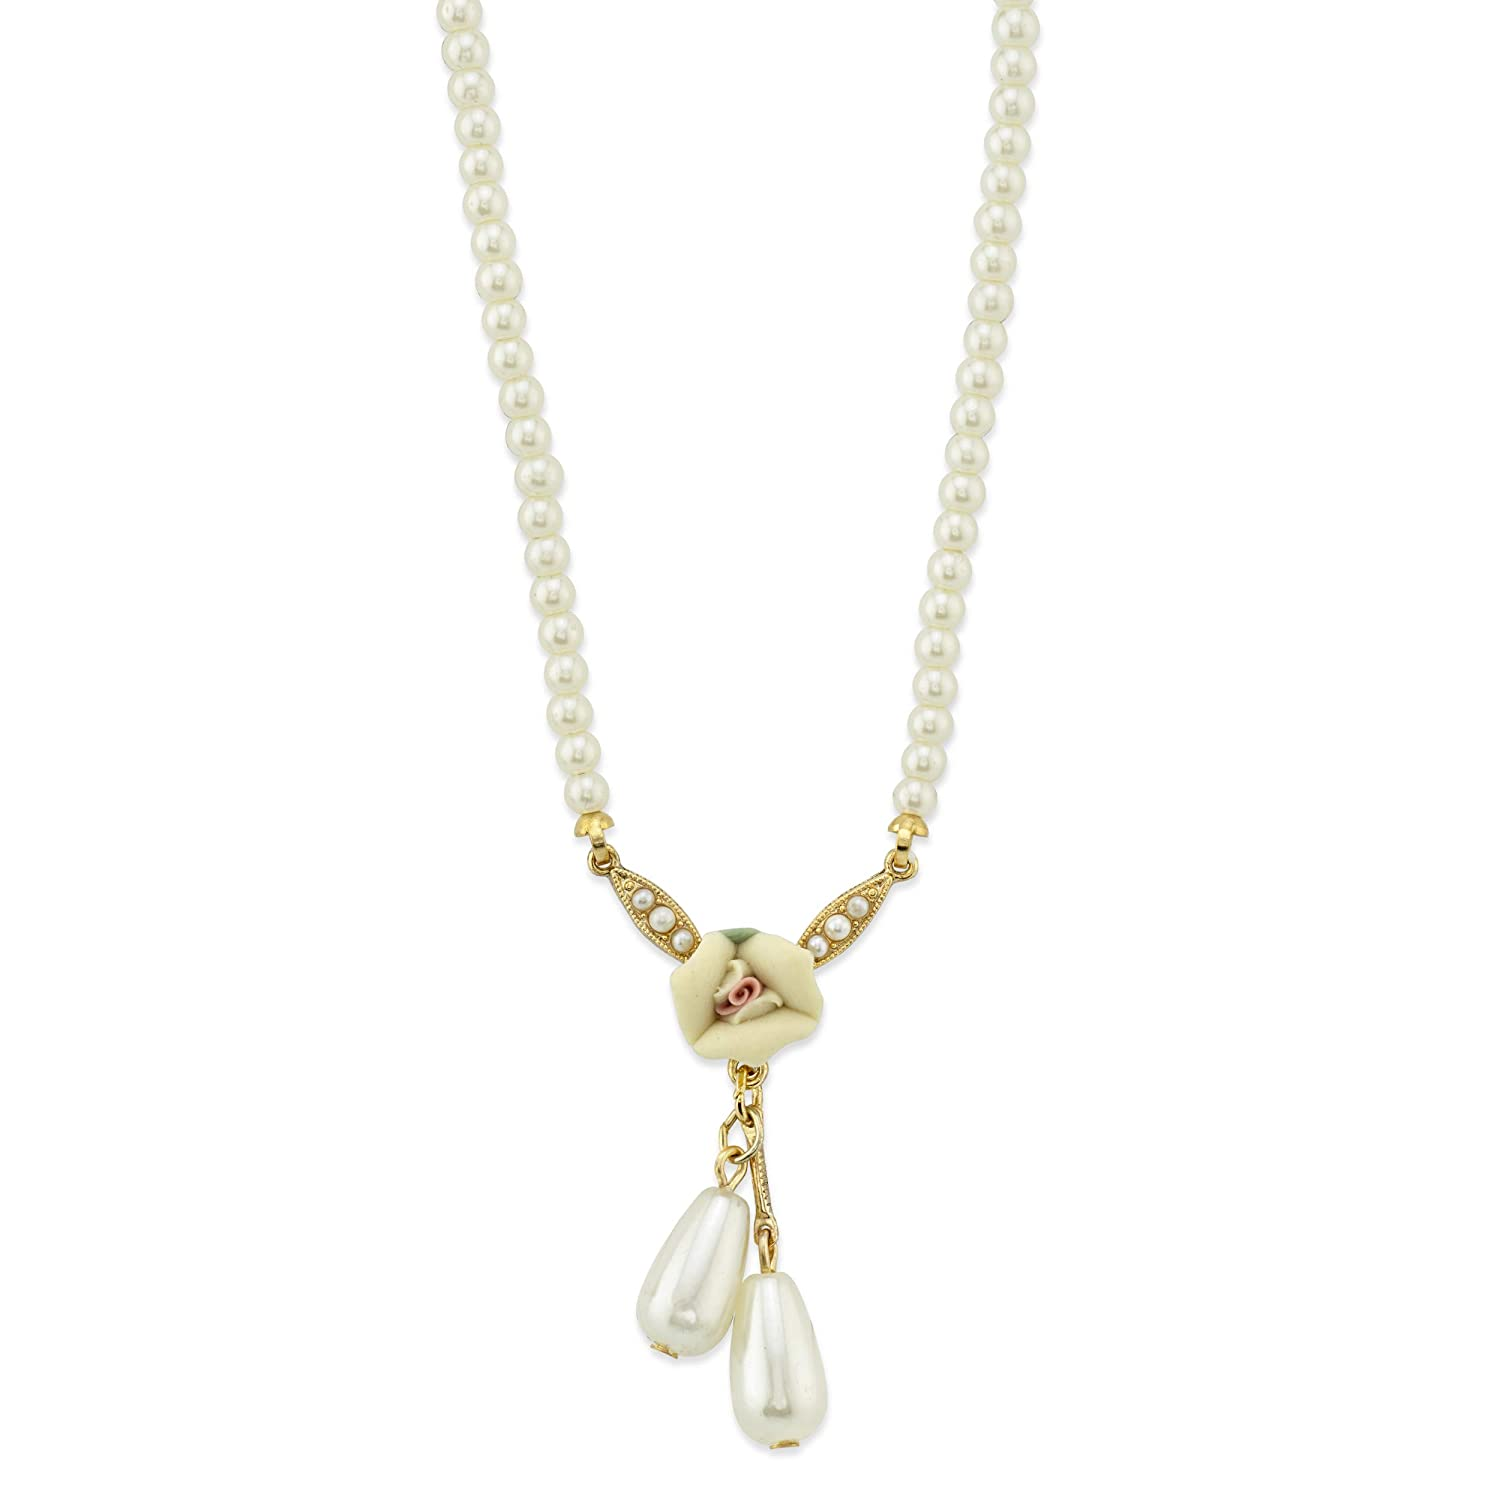 1928 Jewlery Gold-Tone Ivory Porcelain Rose and Simulated Pearl Drop Necklace 16 Adj.